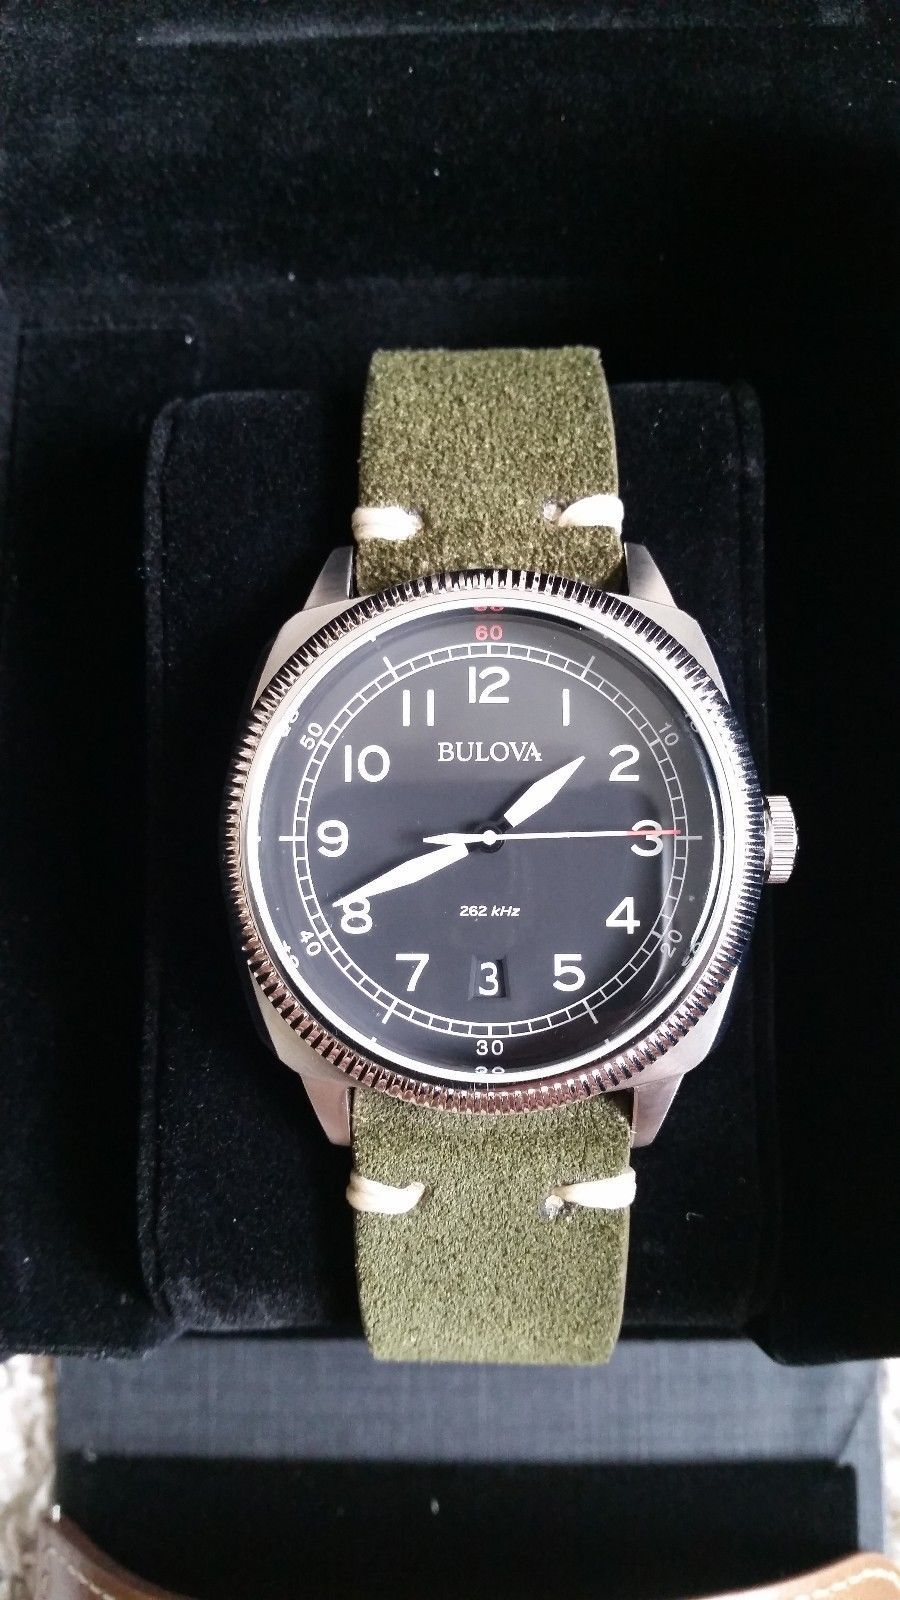 721a0e612 Bulova 96B230 UHF Military Black Dial Men's Field Watch Deer Suede Vintage  Strap